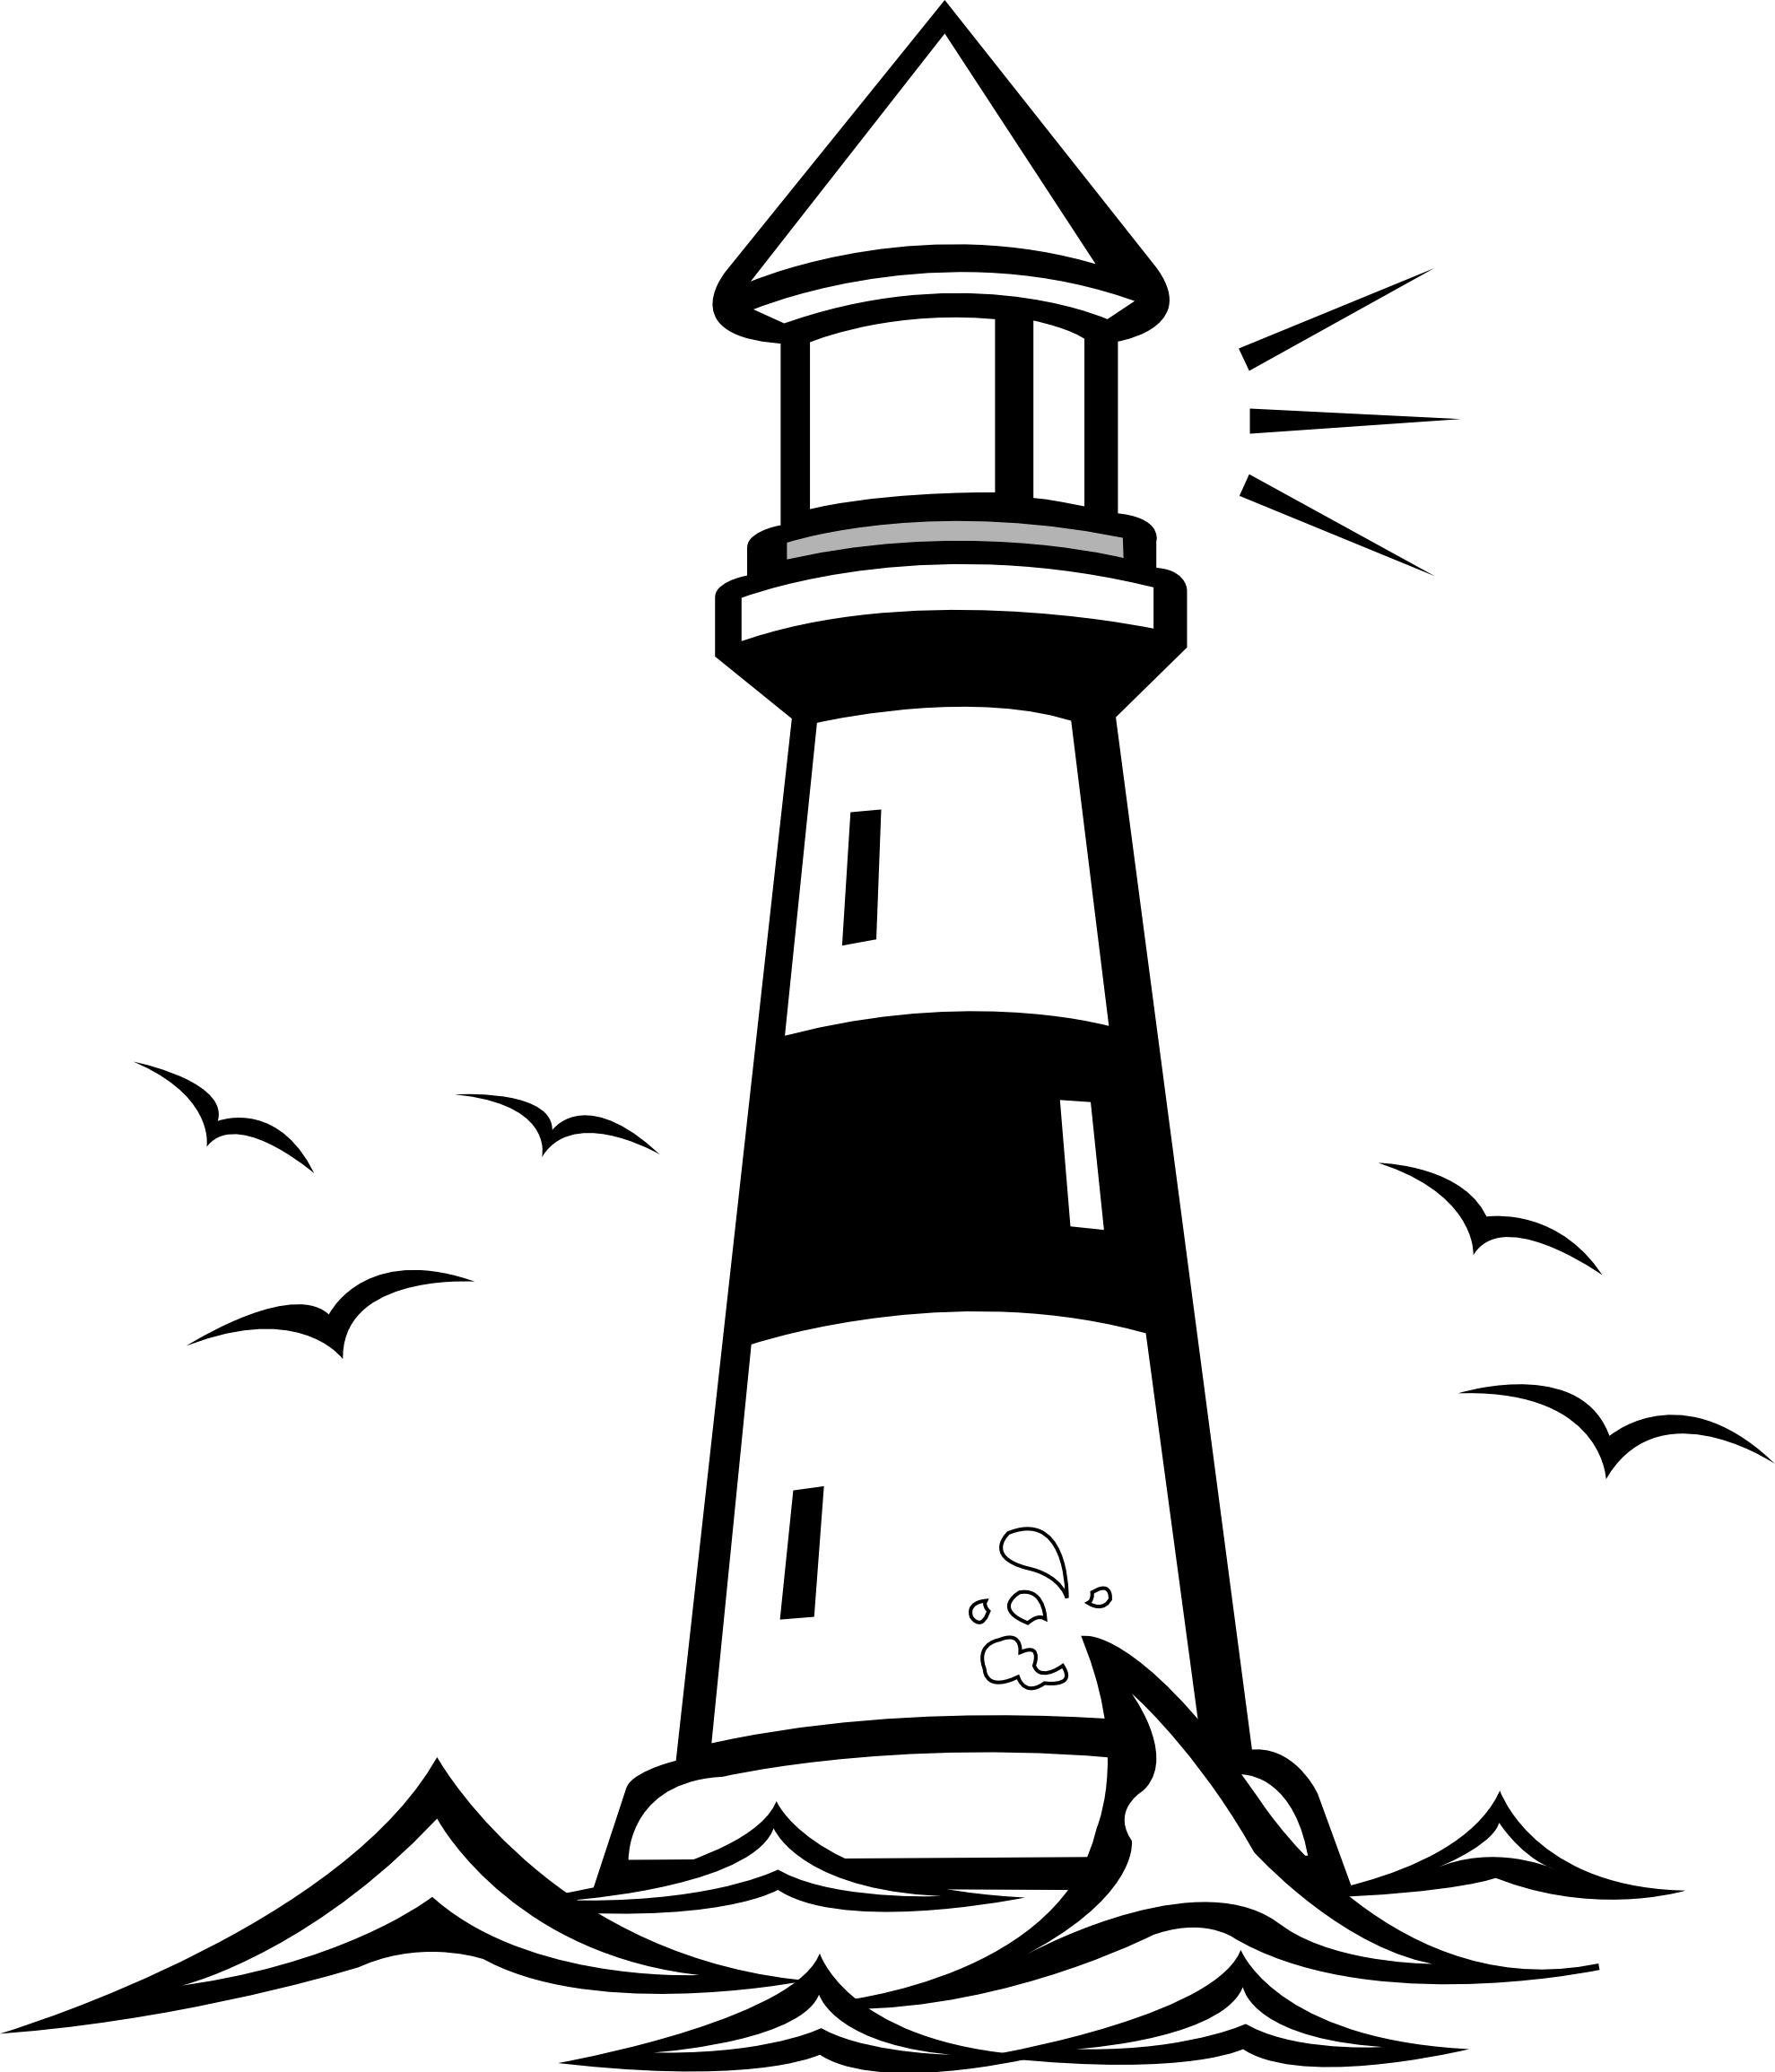 image black and white Lighthouse panda free images. Superman clipart black and white